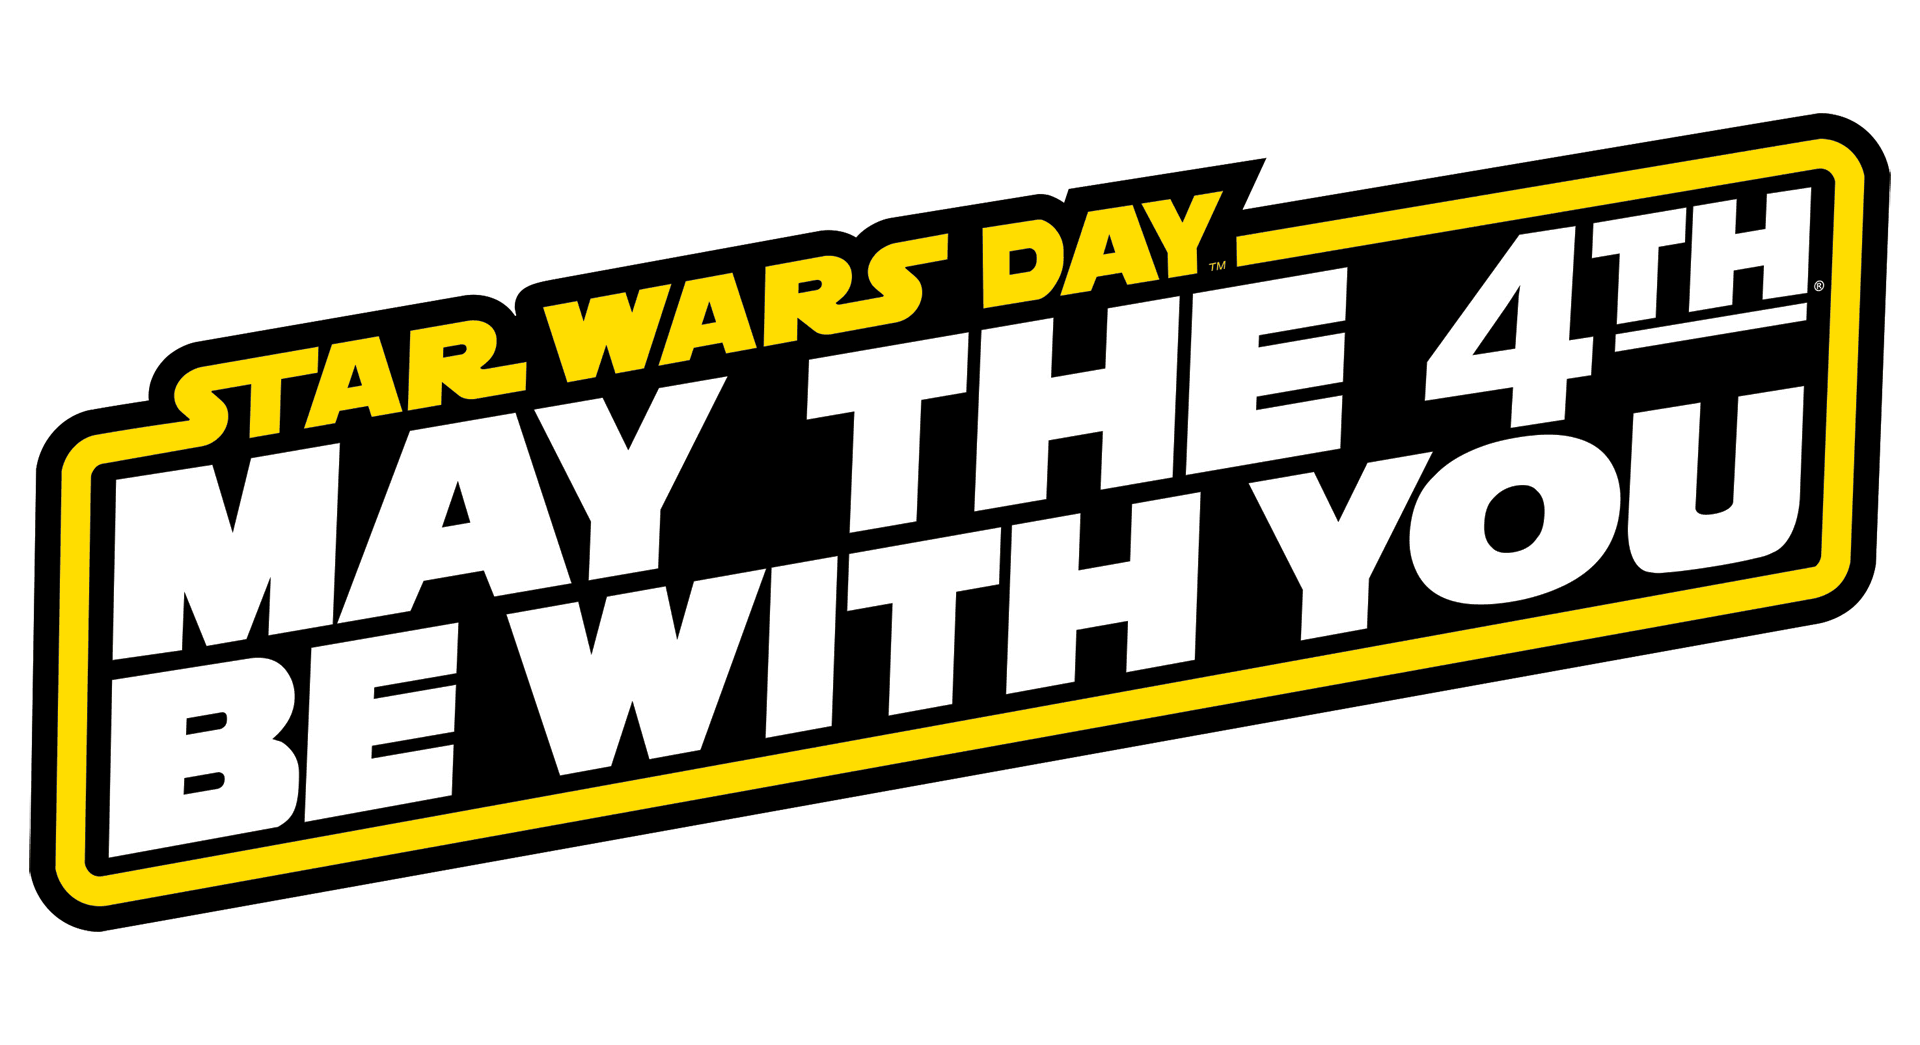 Starwars clipart may the fourth be with you. Happy star wars day